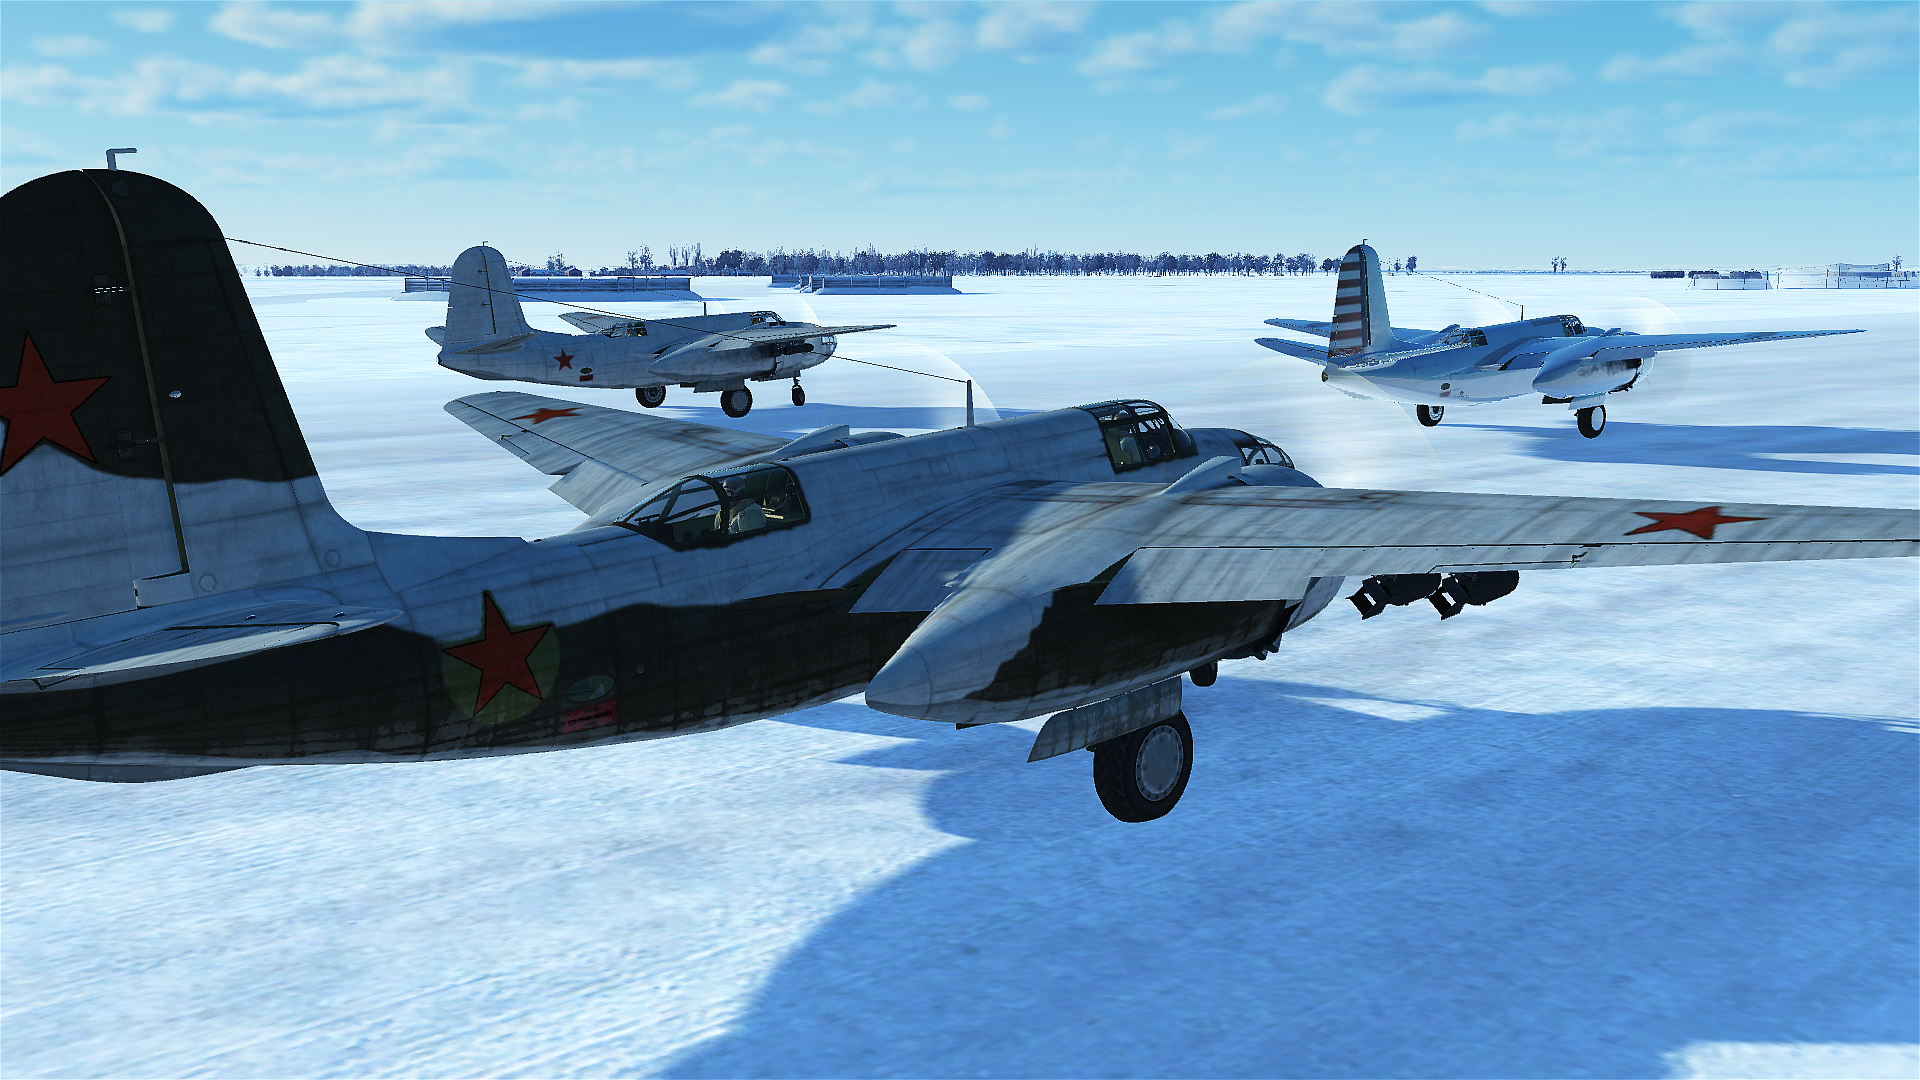 il-22019-06-2022-48-5b6ky5.png